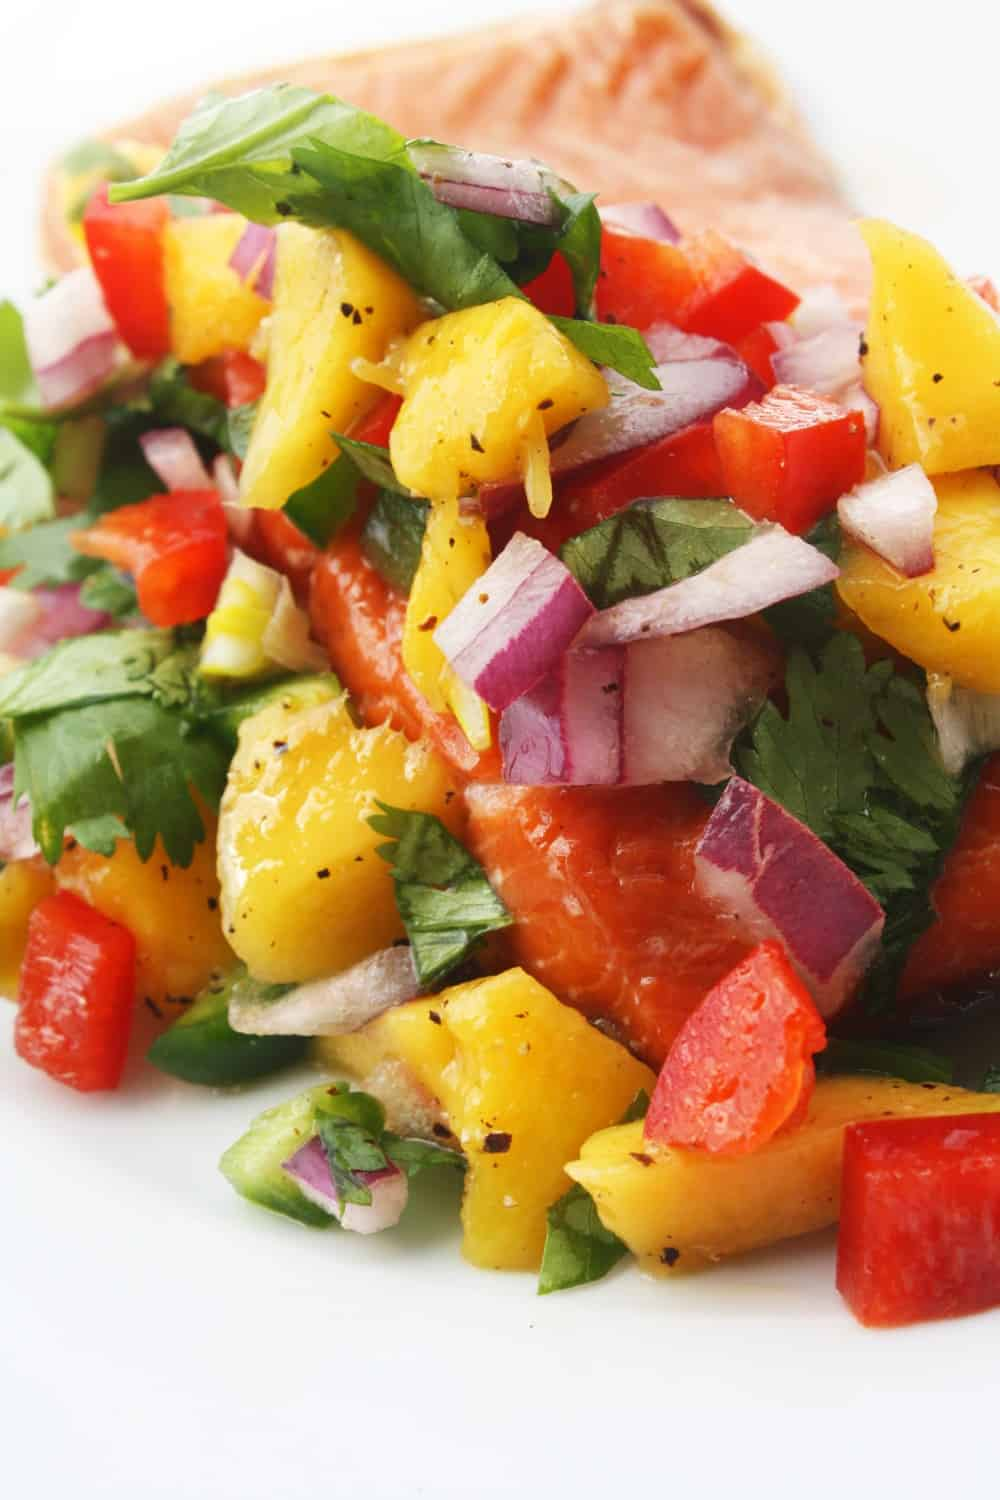 Today's new recipe, Grilled Salmon with Mango Salsa, comes from our ...